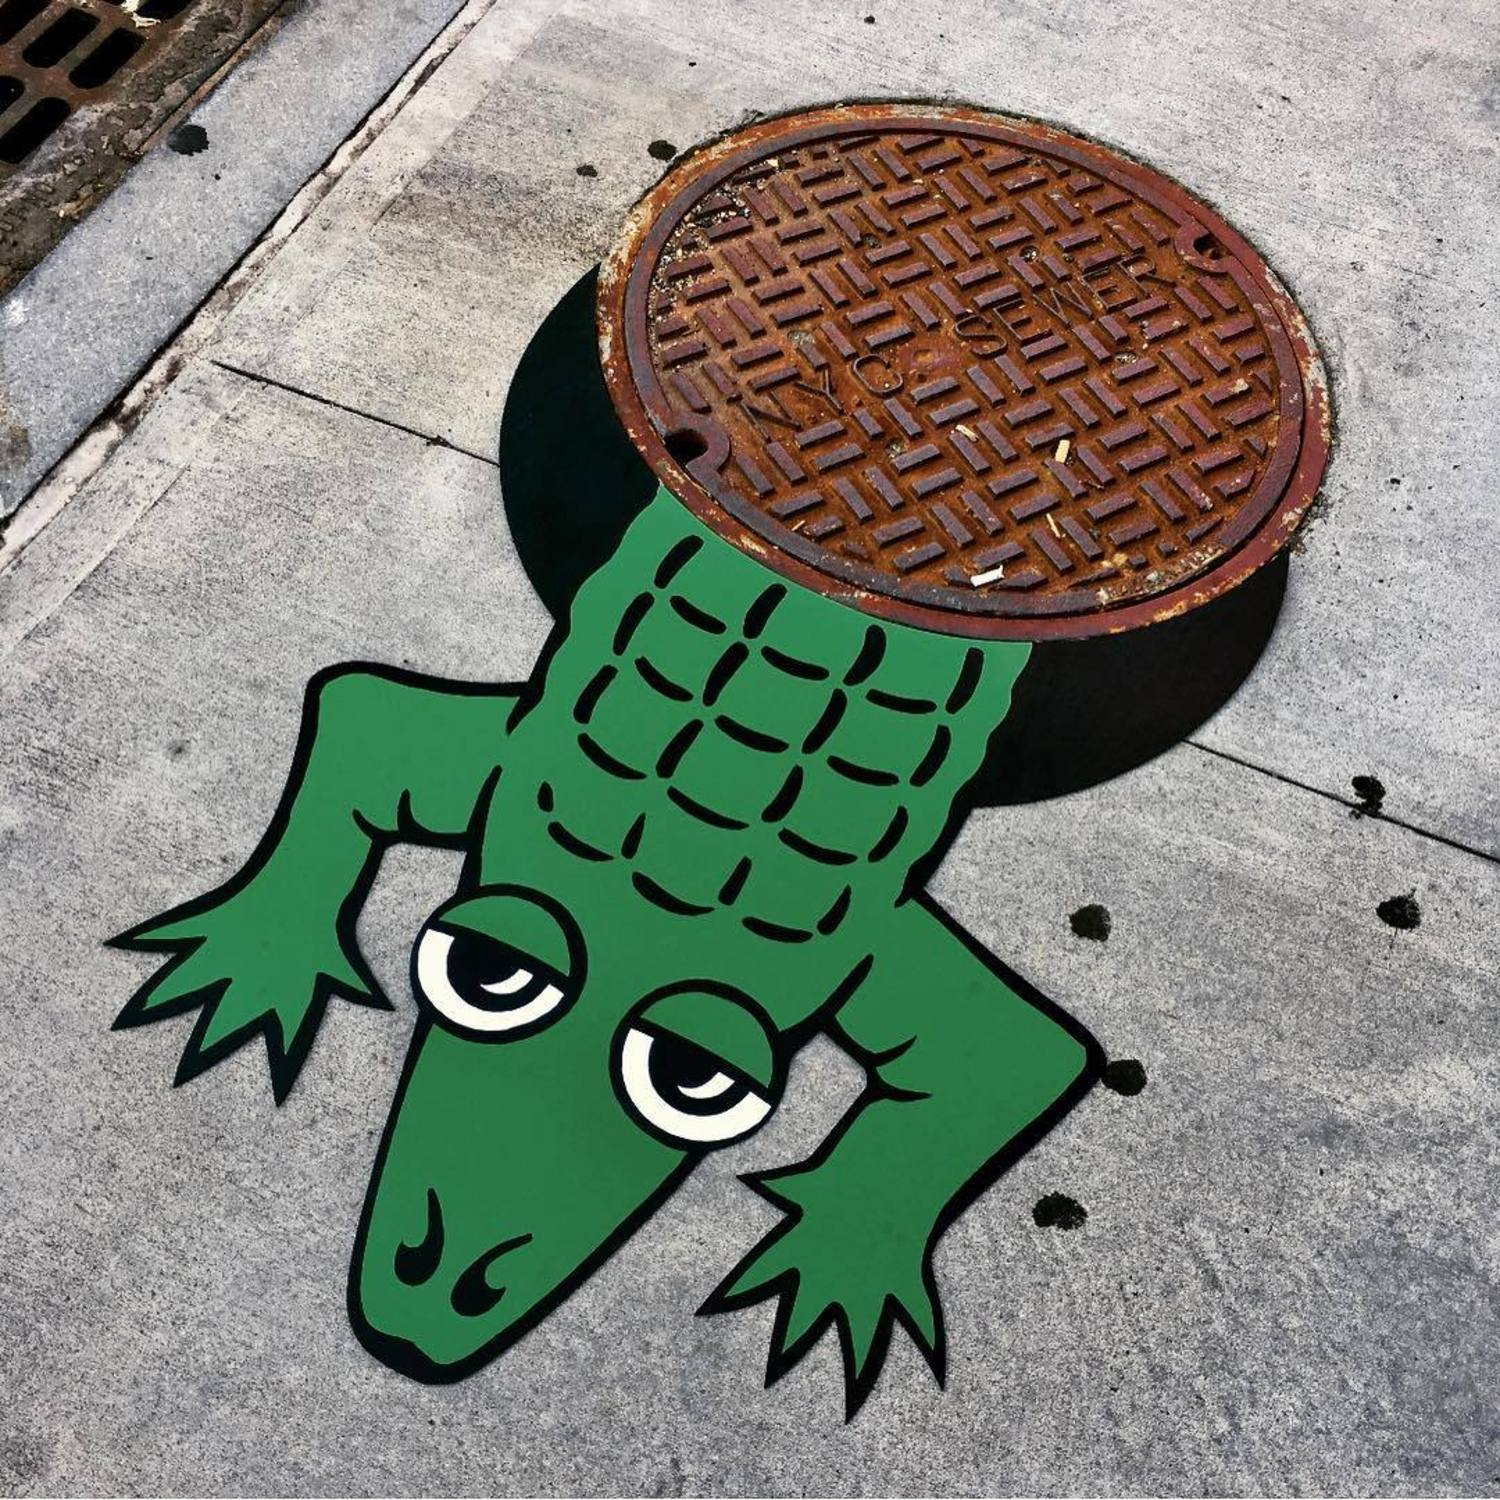 ALLIGATOR SIGHTING DUMBO! 🐊 #alligator #nycsewer #brooklyn #newyorkcity #dumbo #streetart #nyc #sewer #🐊 #streetartbrooklyn #tombobnyc #streetartnyc #tombob #publicart #cartoon 🐊#manhole #manholecover #👀